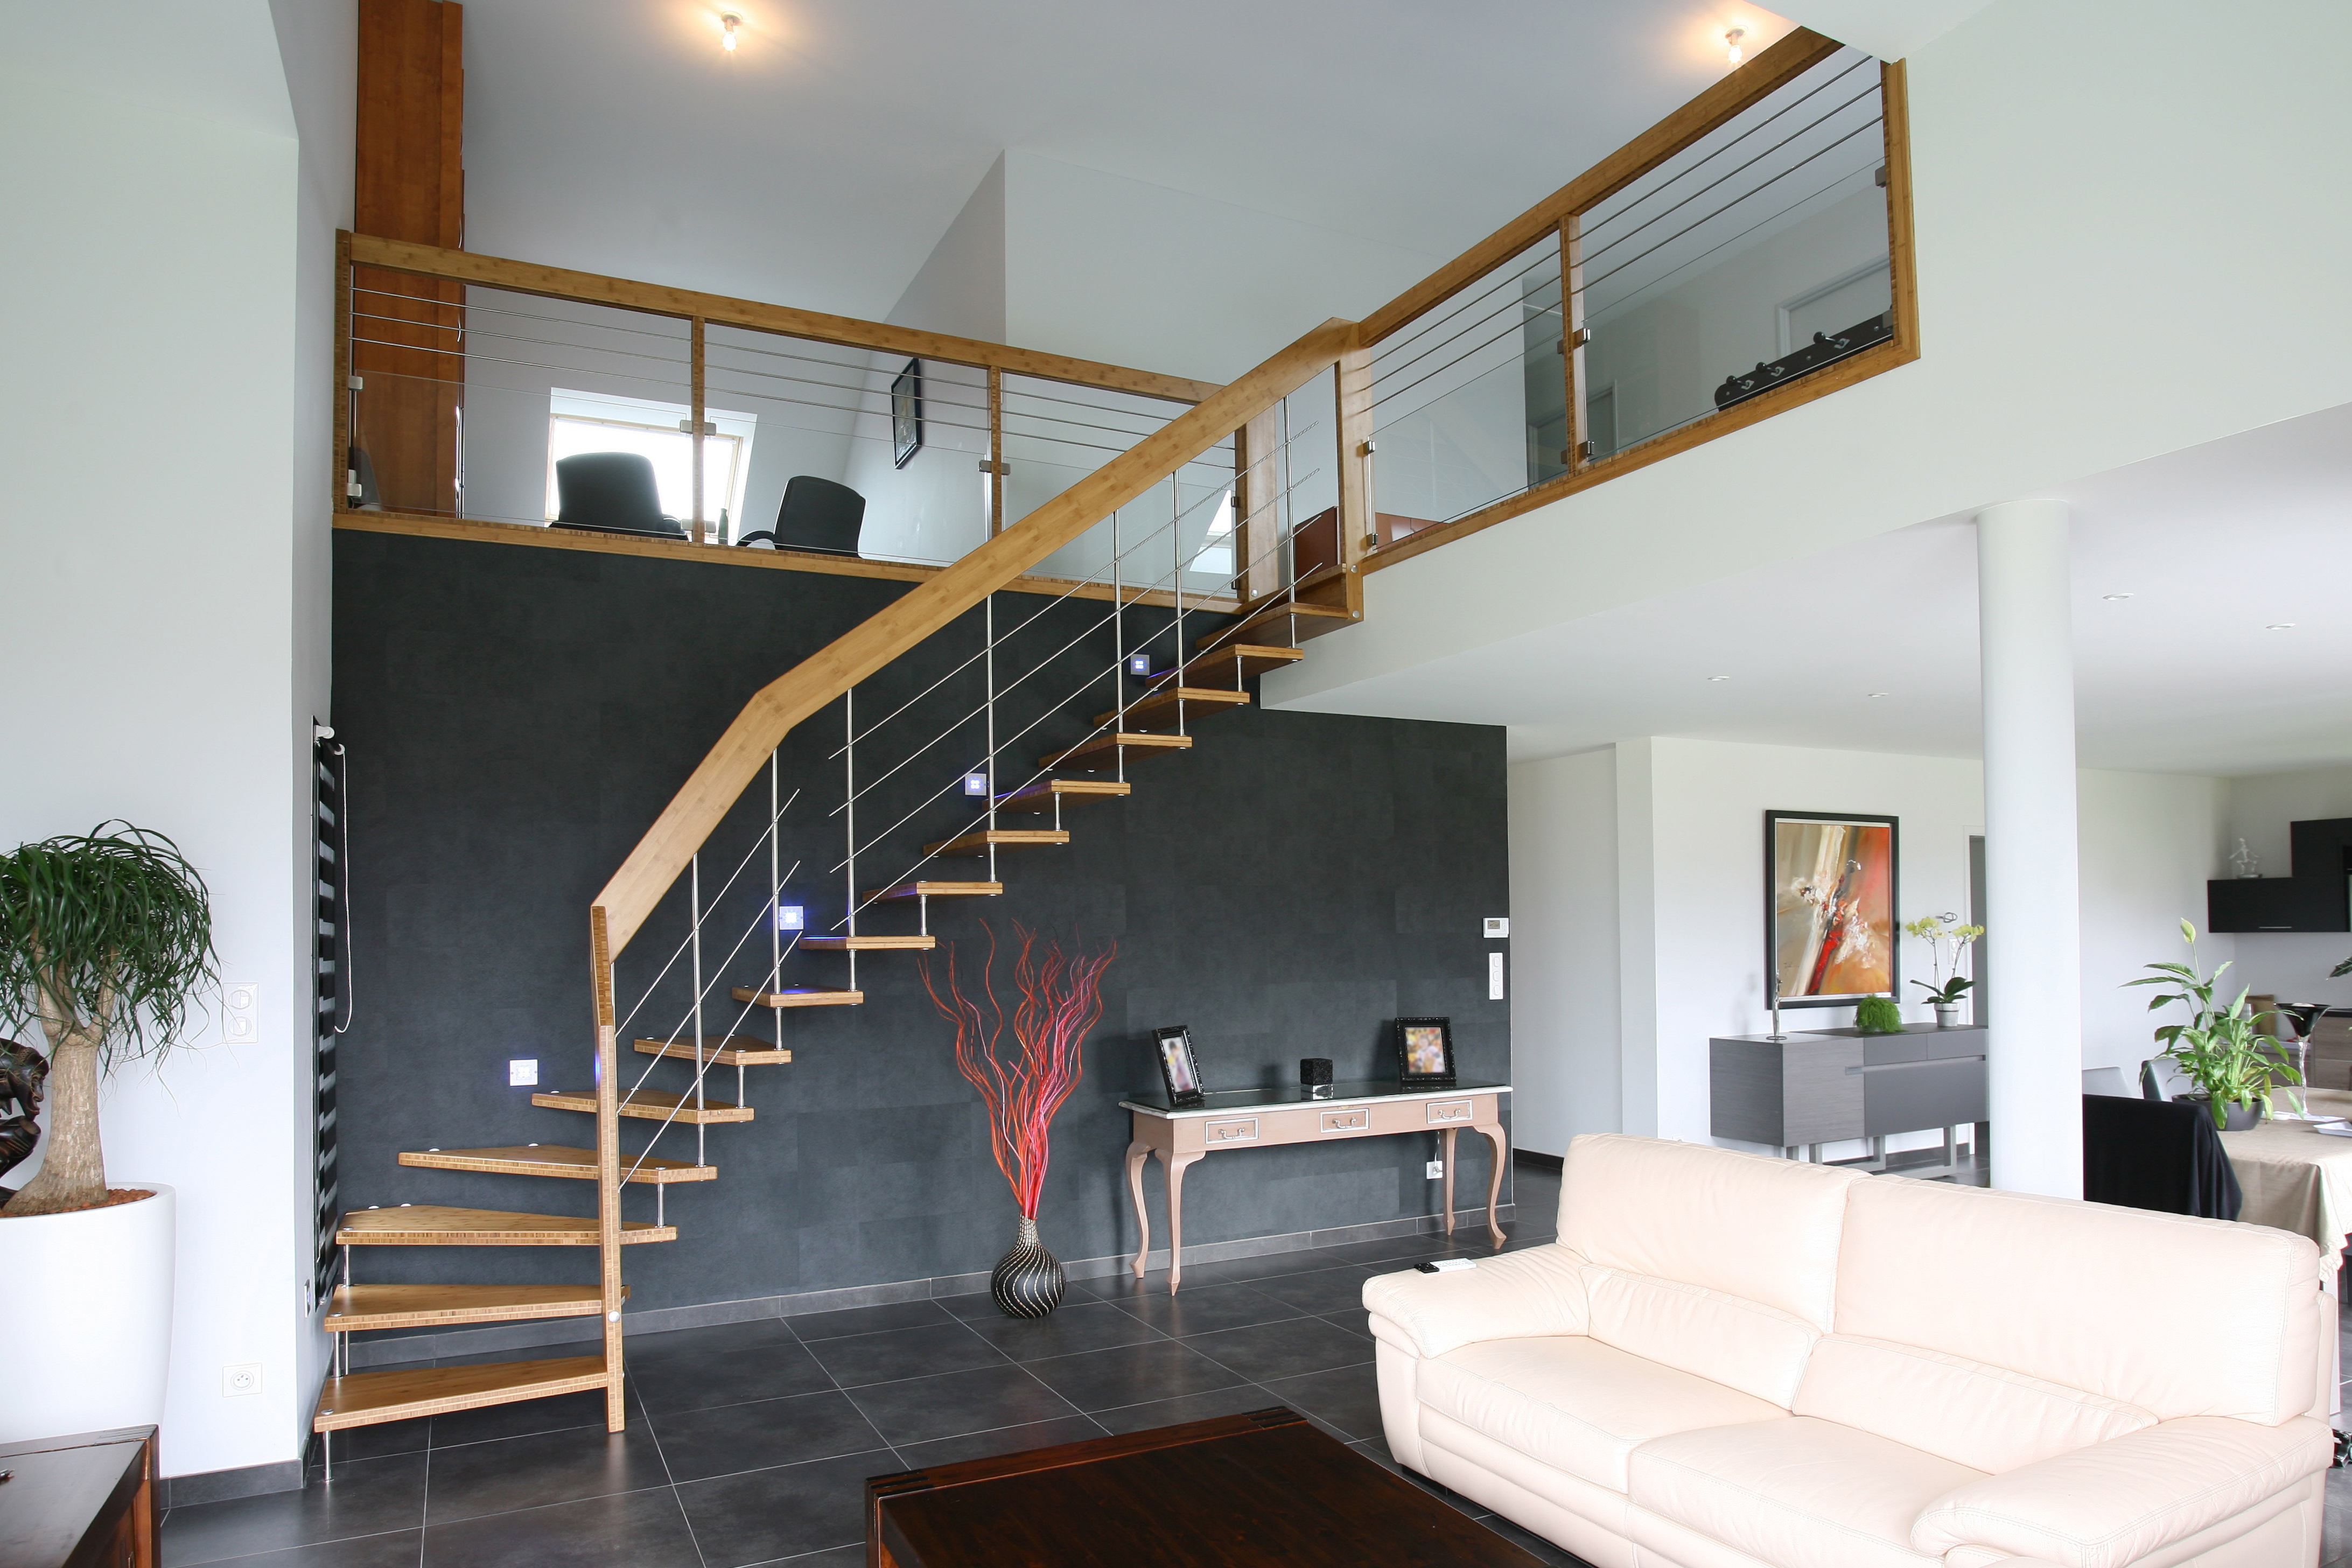 l escalier un atout dans votre d co de fil en d co. Black Bedroom Furniture Sets. Home Design Ideas